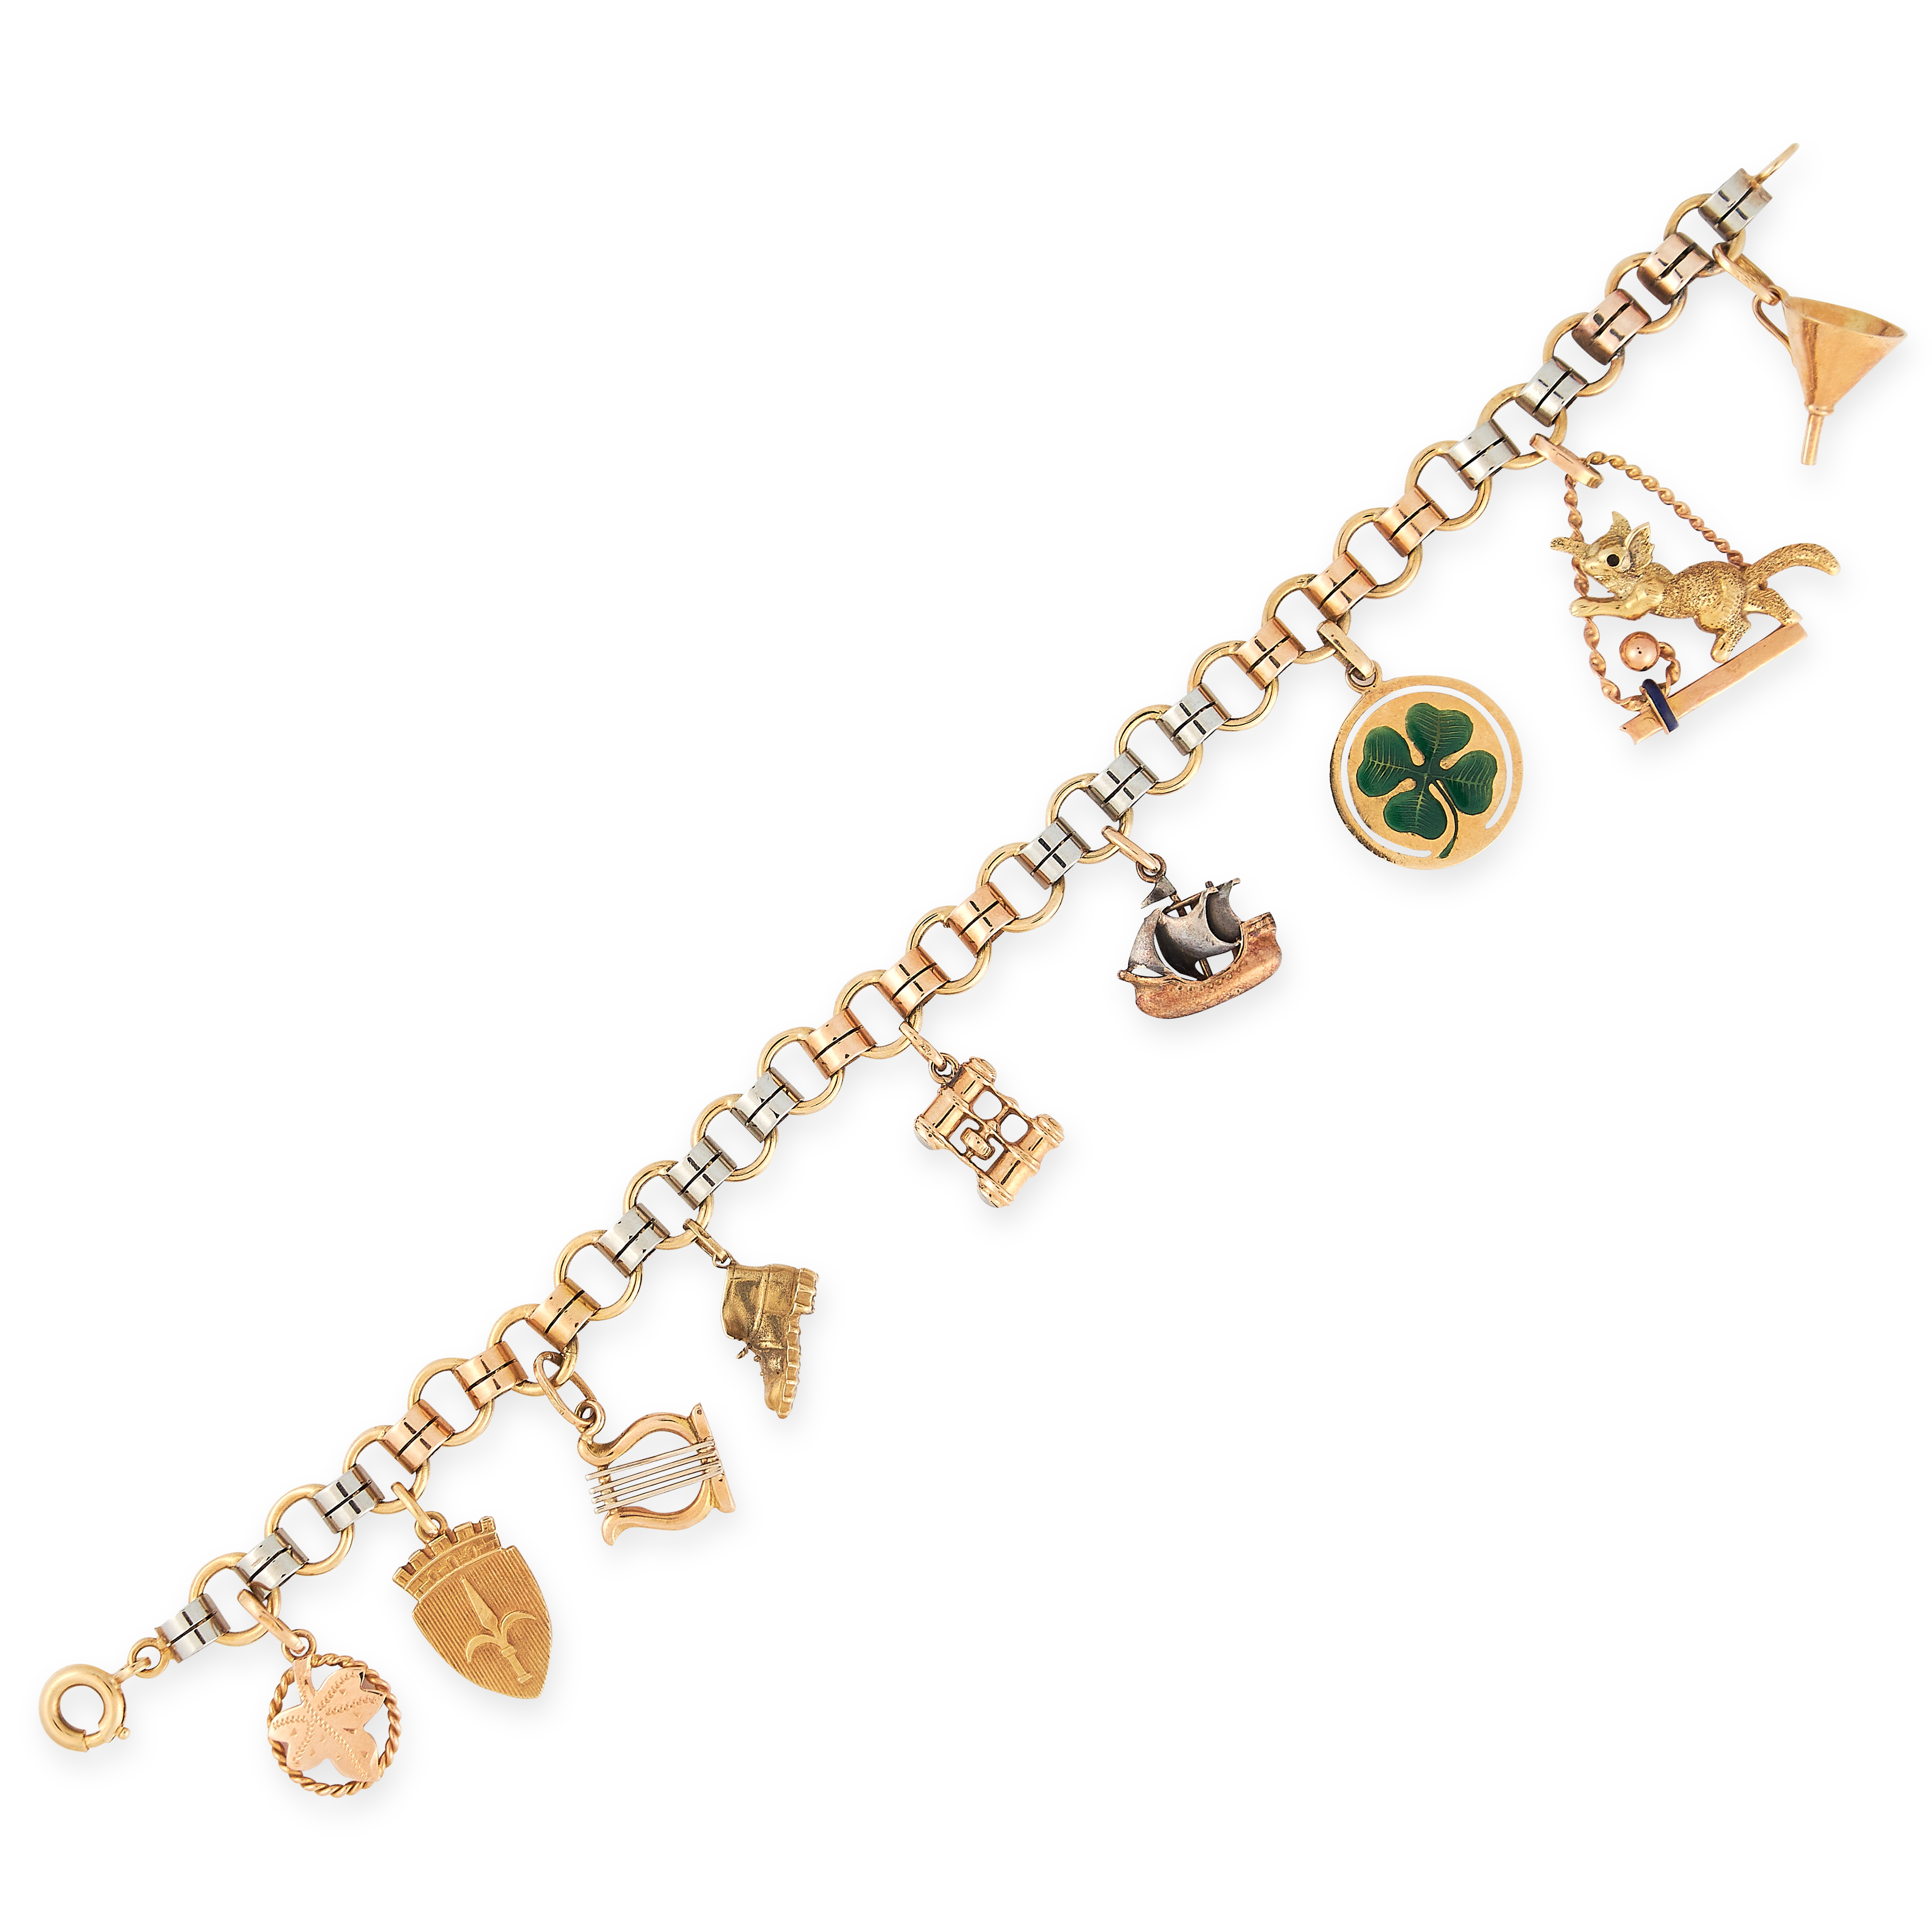 CHARM BRACELET in yellow gold, comprising of a fancy link chain suspending nine charms including a